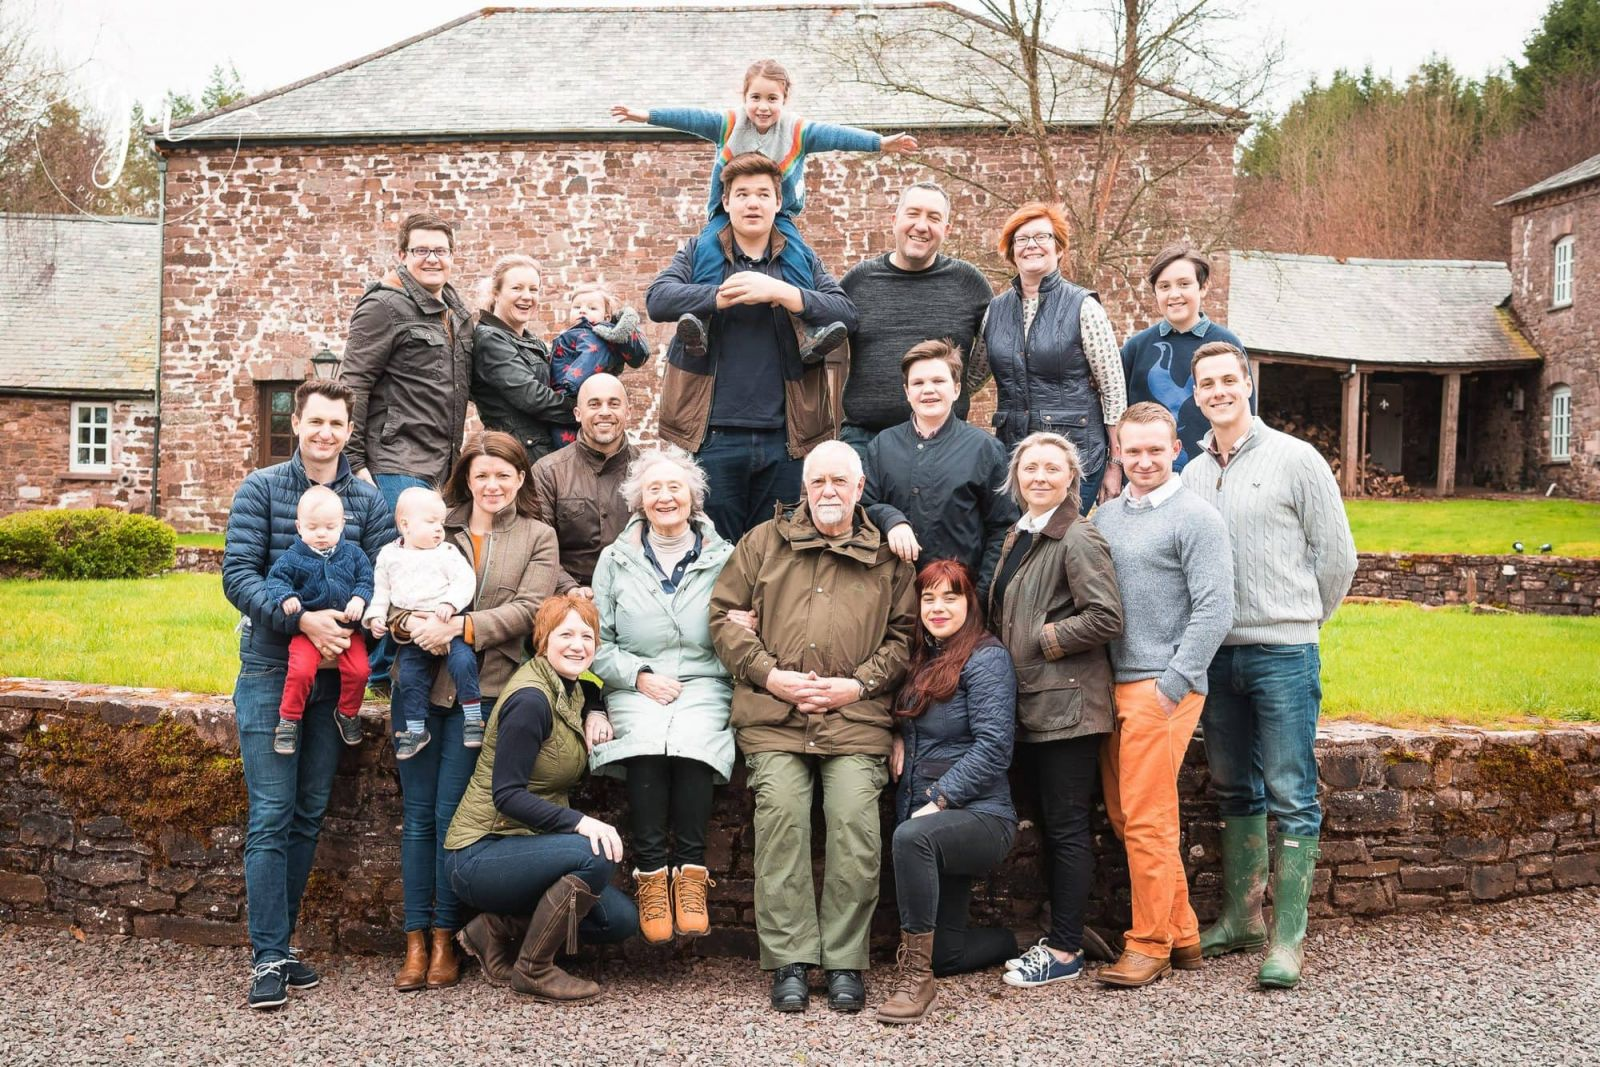 large family photograph taken outdoors in somerset